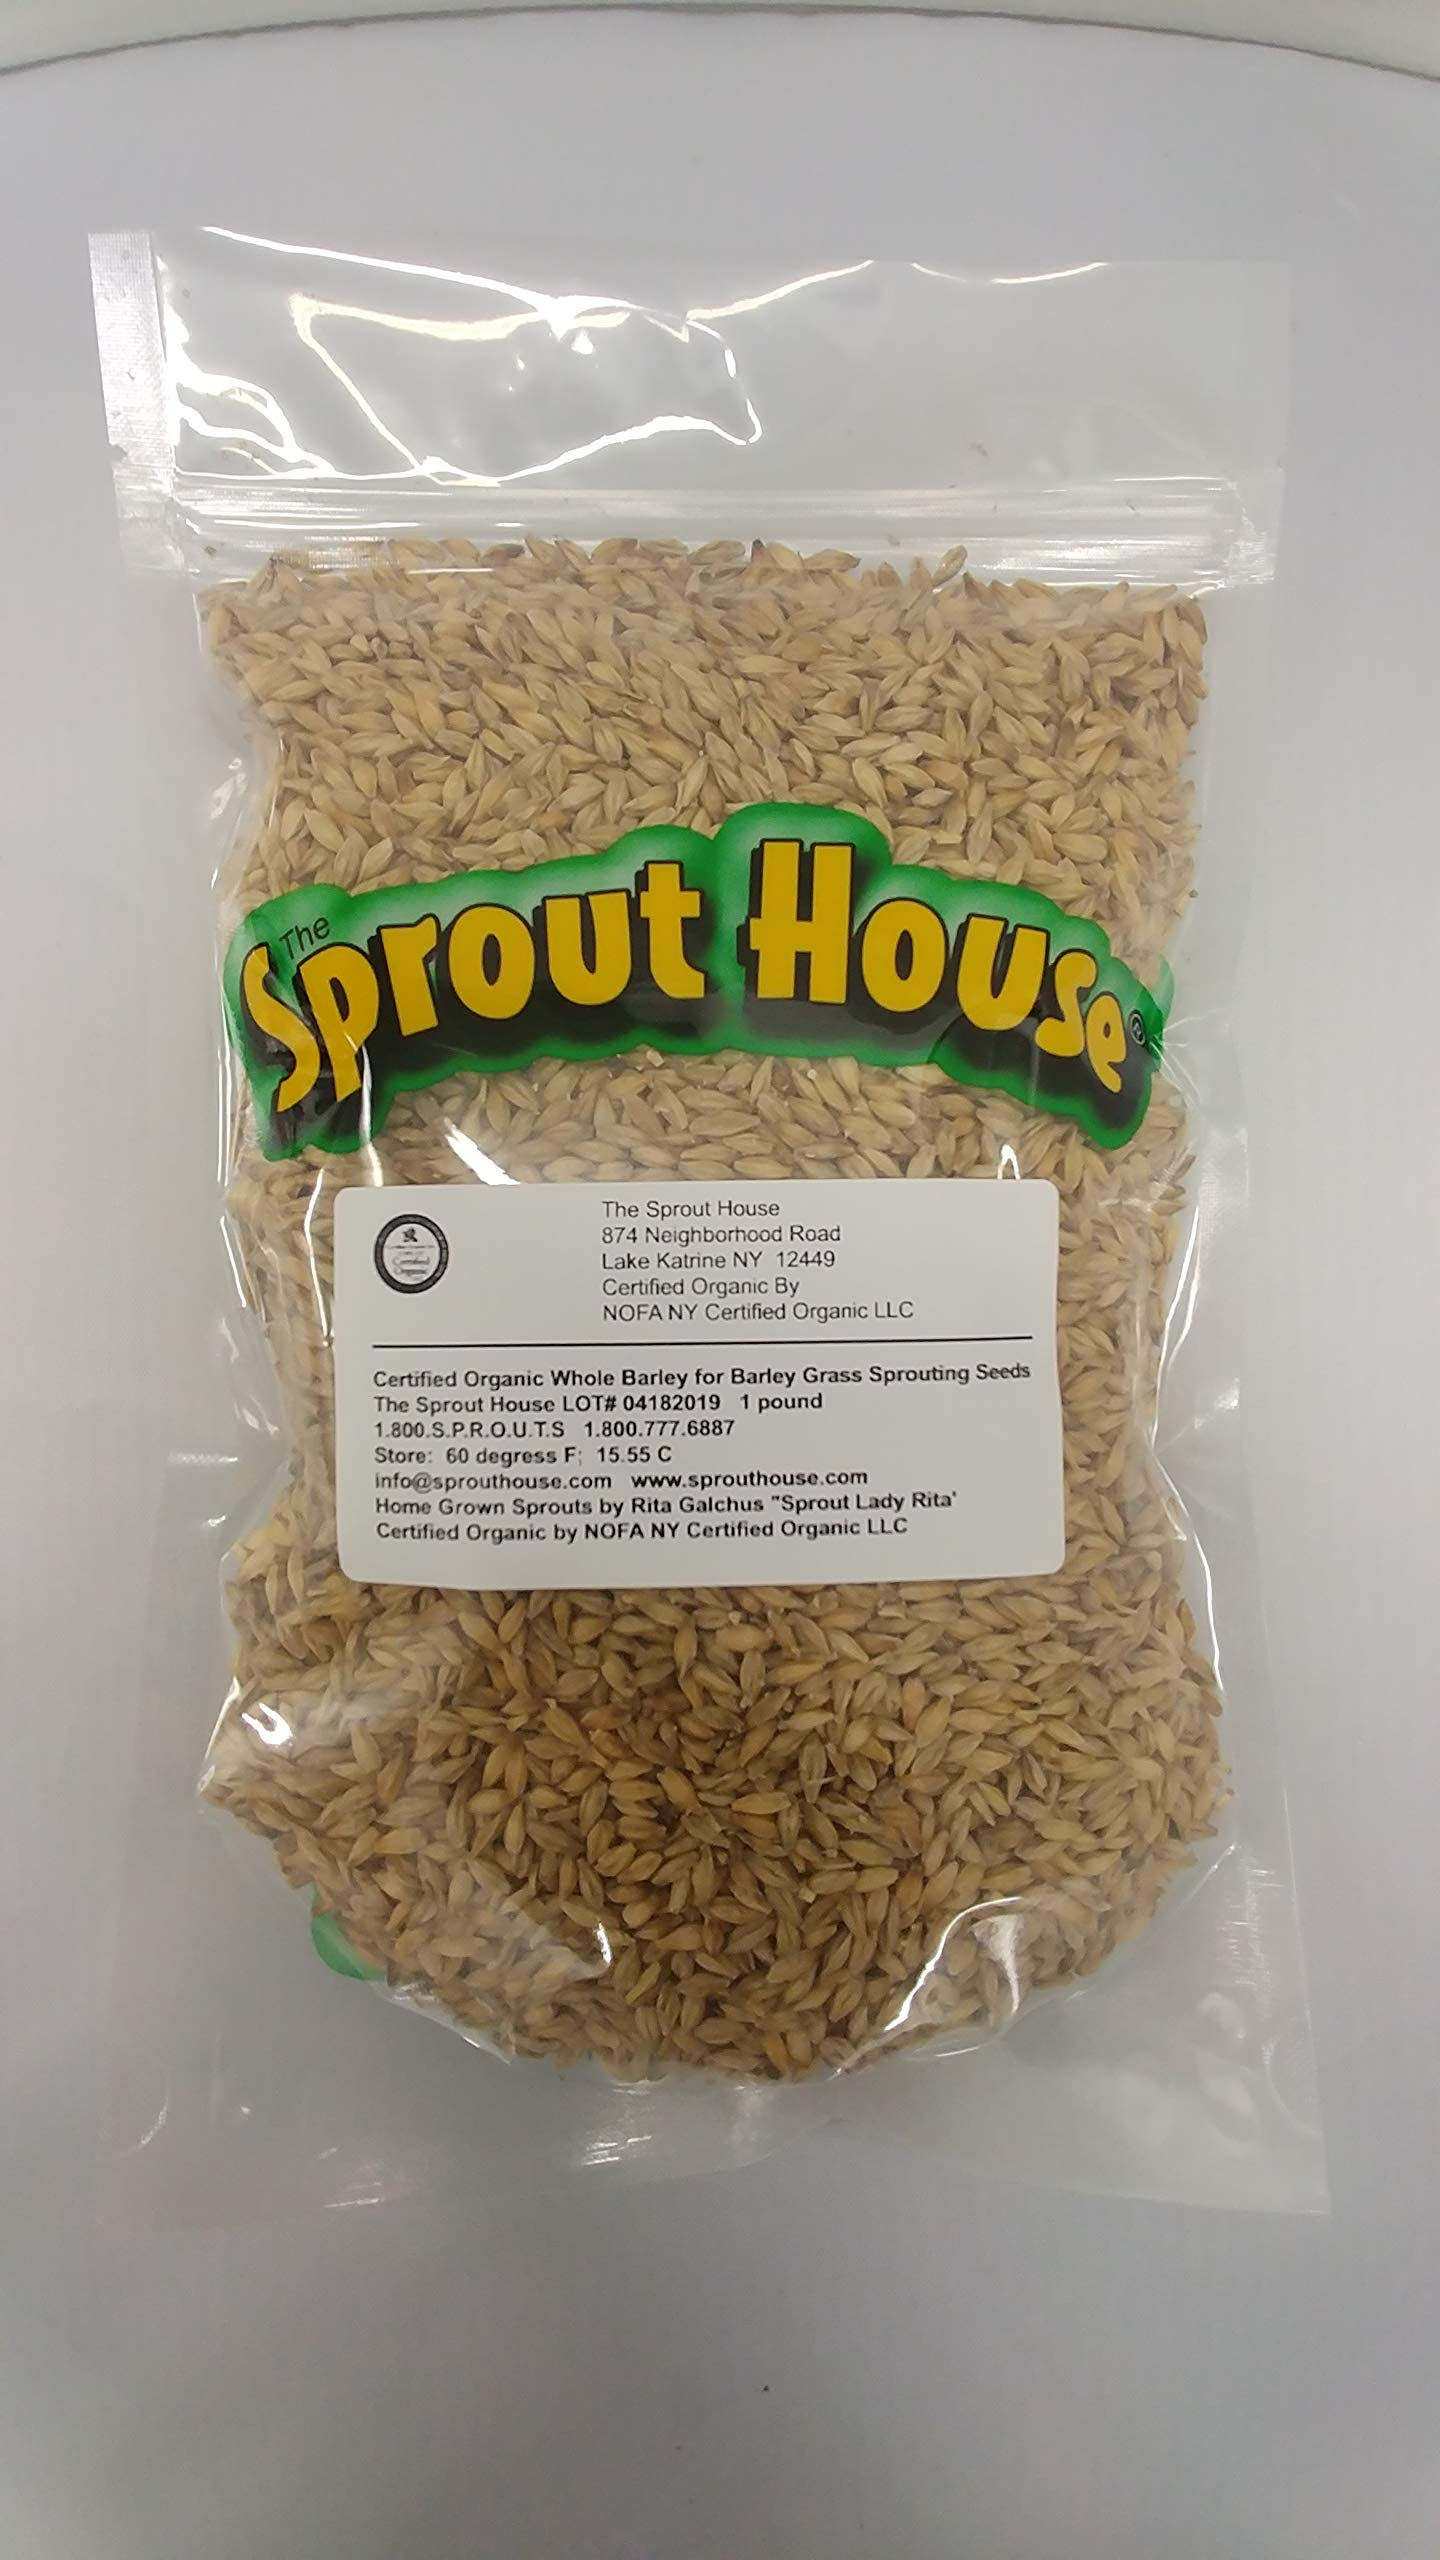 The Sprout House Certified Organic Non-gmo Whole Barley for Barley Grass 1 Pound